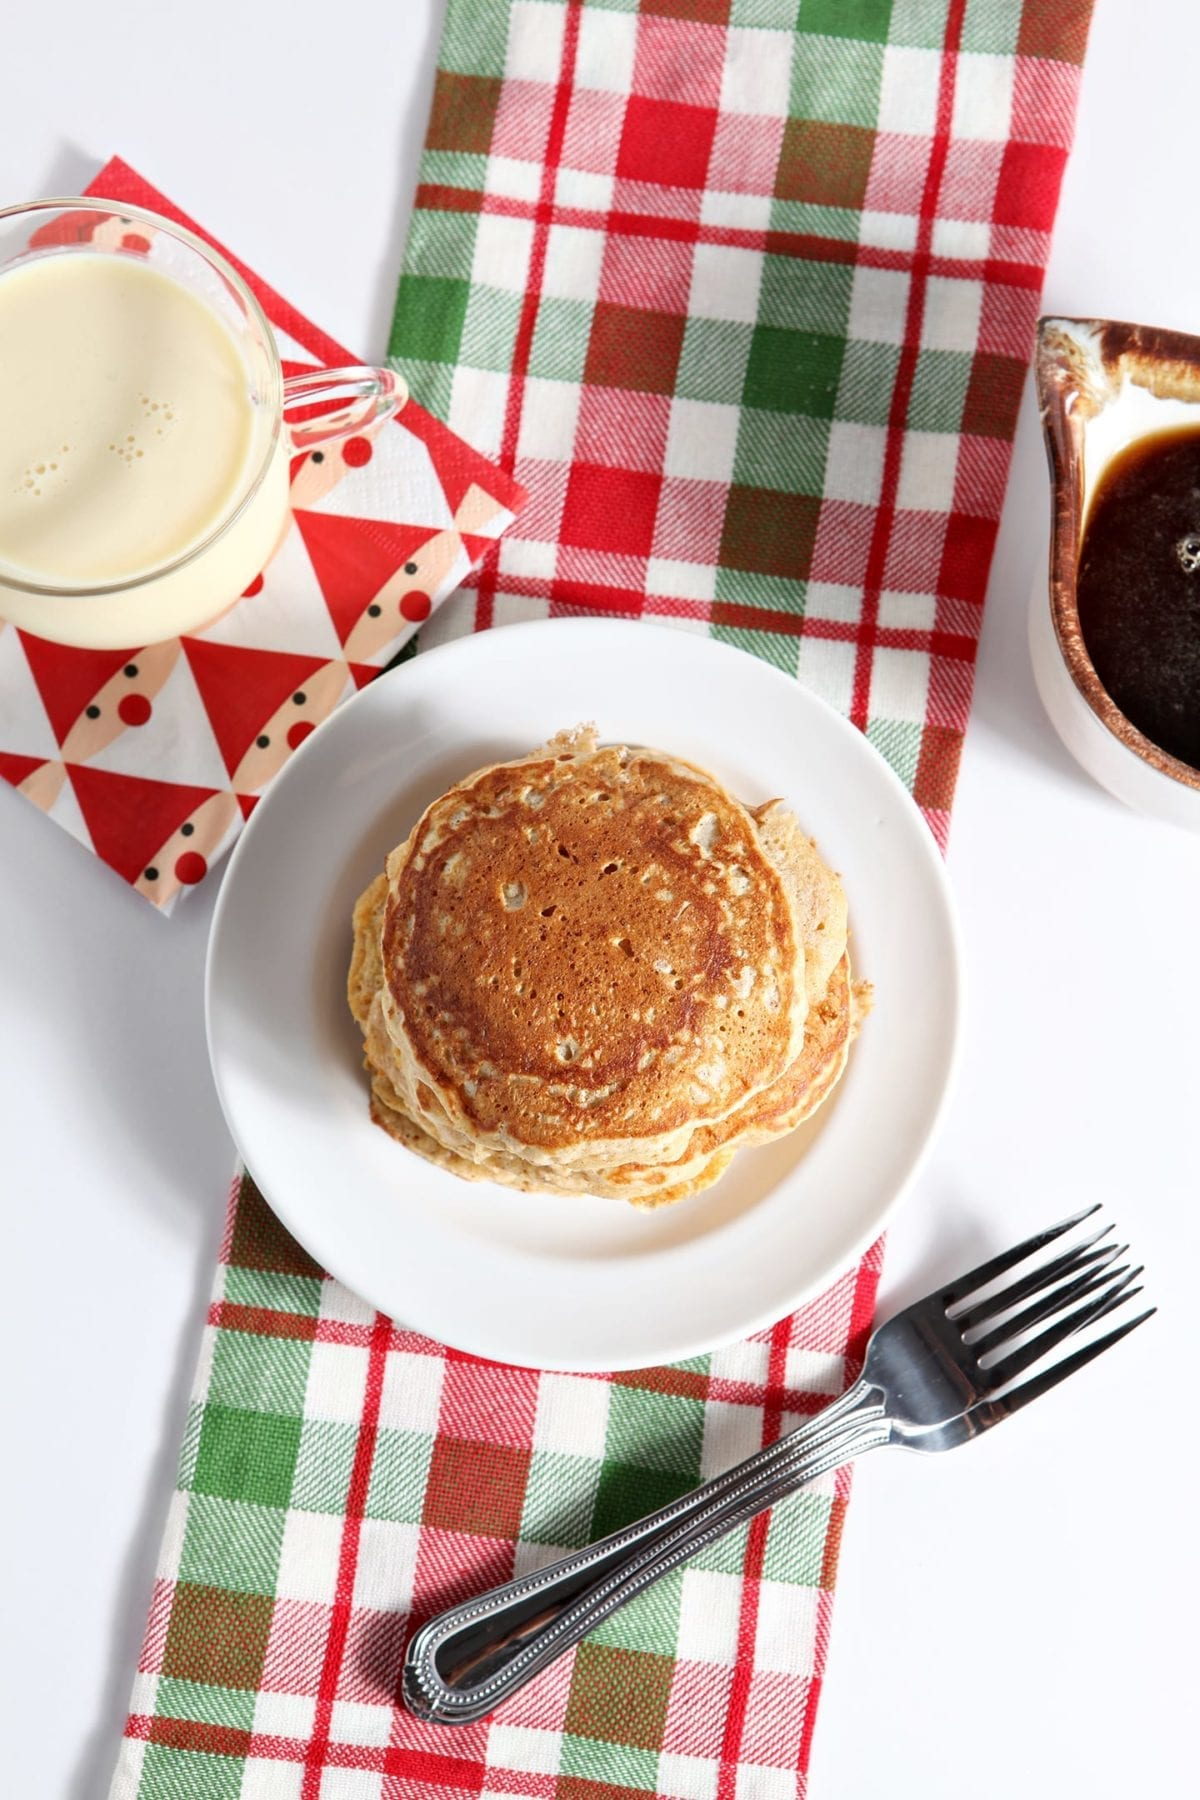 A stack of pancakes sits on a white plate sitting on a red and green plaid towel next to a cup of eggnog and syrup